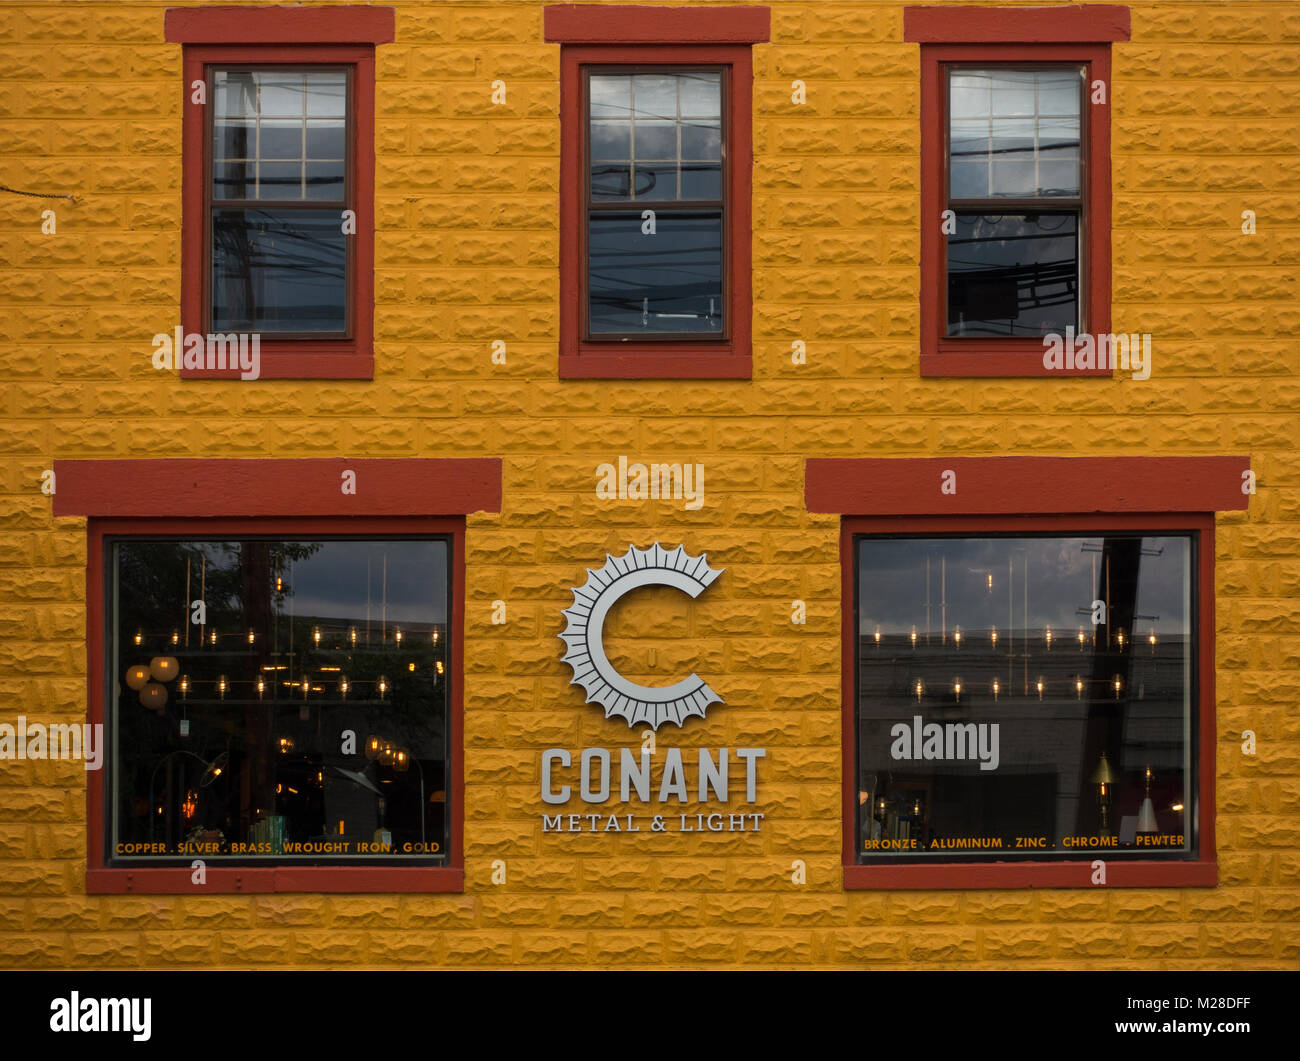 Conant metal and light Burlington VT & Conant metal and light Burlington VT Stock Photo: 173519235 - Alamy